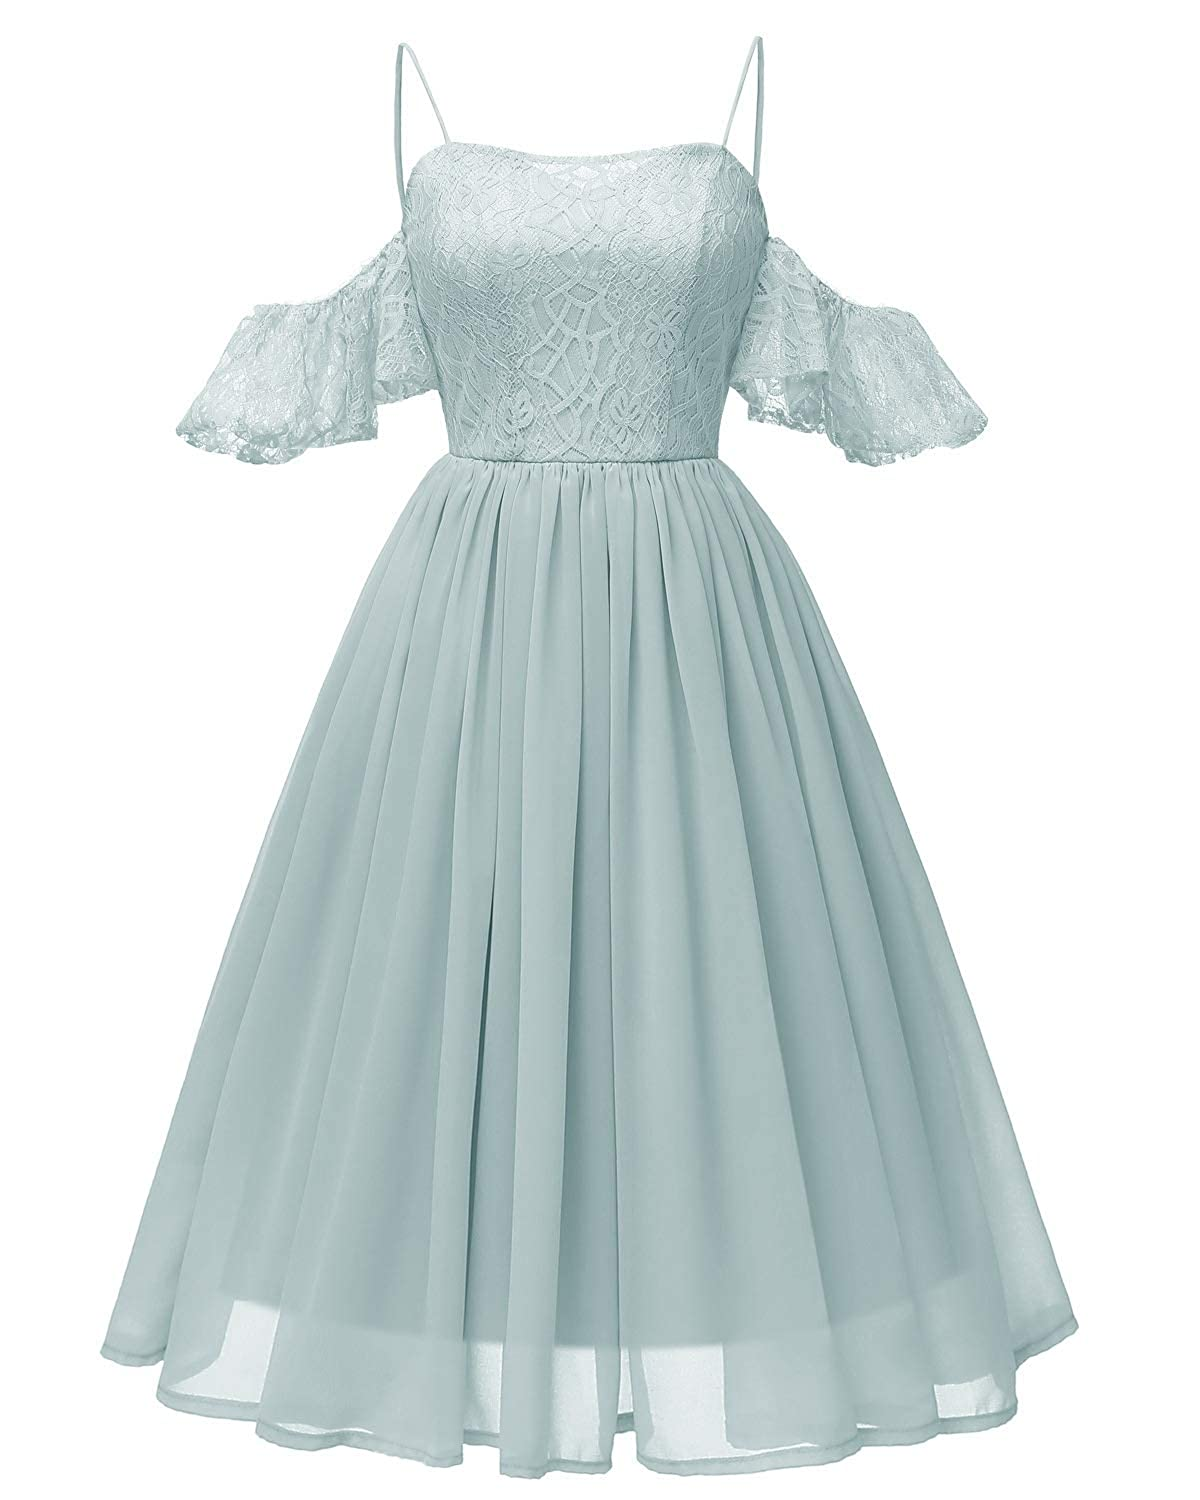 bluee Zooka Embroidery Vintage Lace Dress Women Dresses Short Sleeve Casual Evening Party A Line